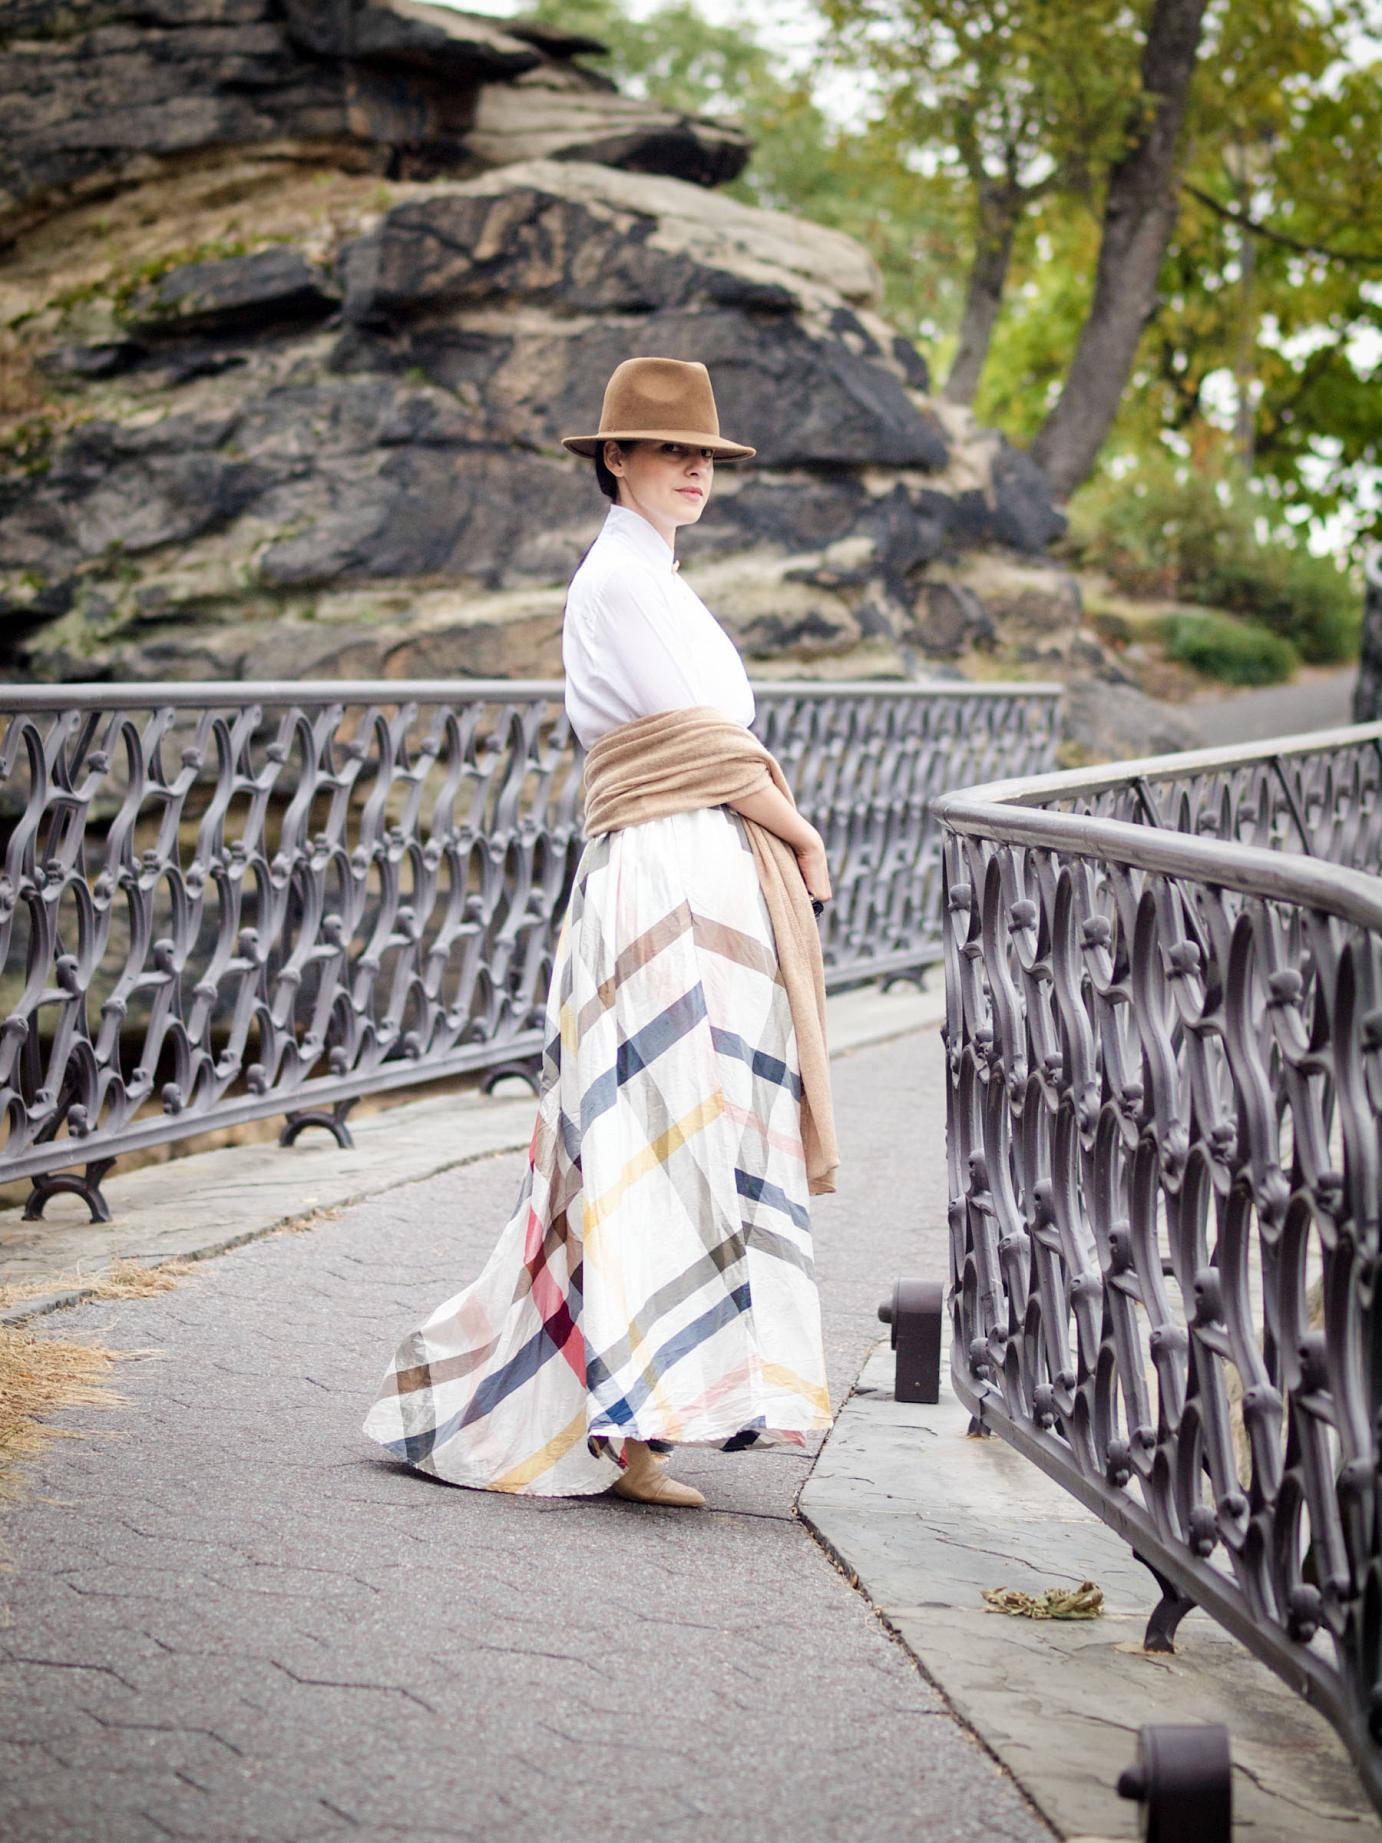 bittersweet colours, calypso st barth, Philadelphia, street style, fall trends, fall colors, maxi skirt, calvin klein fedora hat, white shirt, maternity style, baby bump, cashmere scarf,